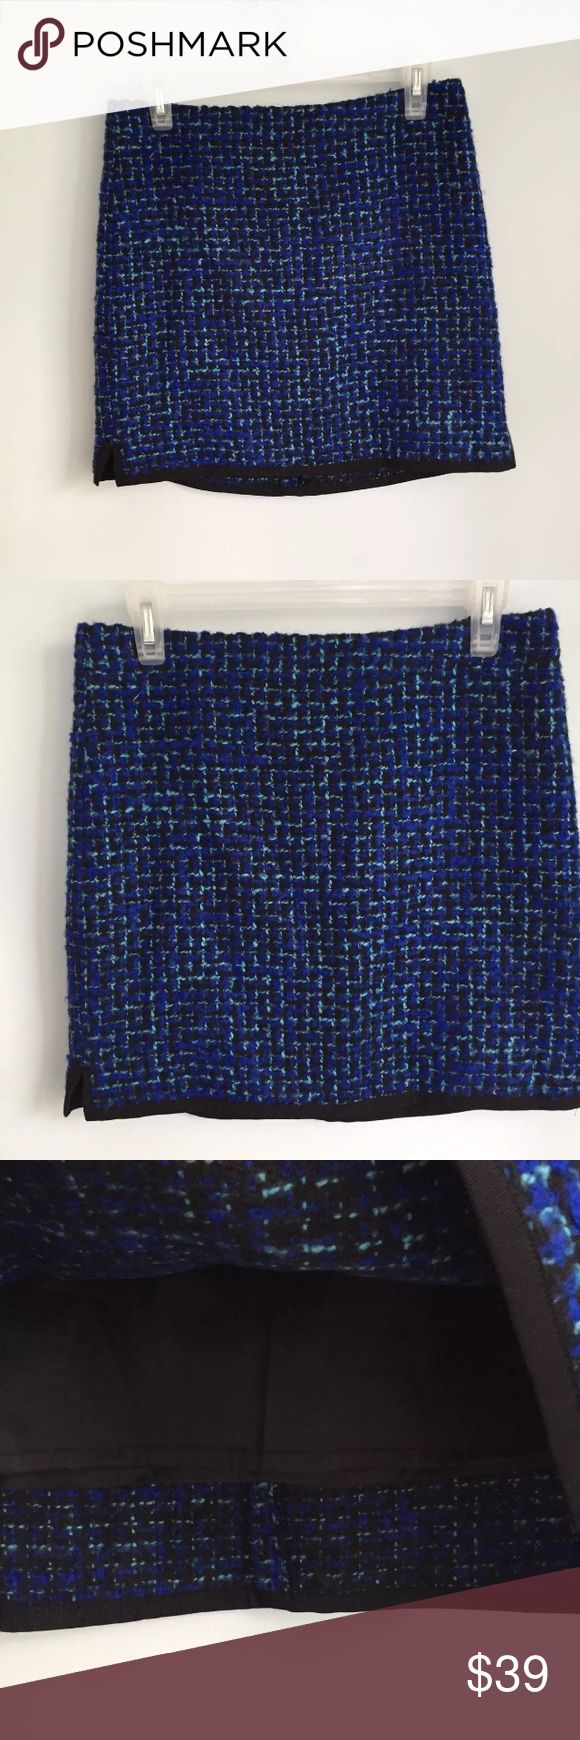 """J.CREW Blue Postage Stamp Mini Skirt Women's J.CREW Postage Stamp Mini Skirt Blue Indigo Tweed Wool Blend Pre-owned in great condition with no flaws Size 2 Measures 16"""" across waist laying flat Length is 17"""" long J. Crew Skirts Mini"""